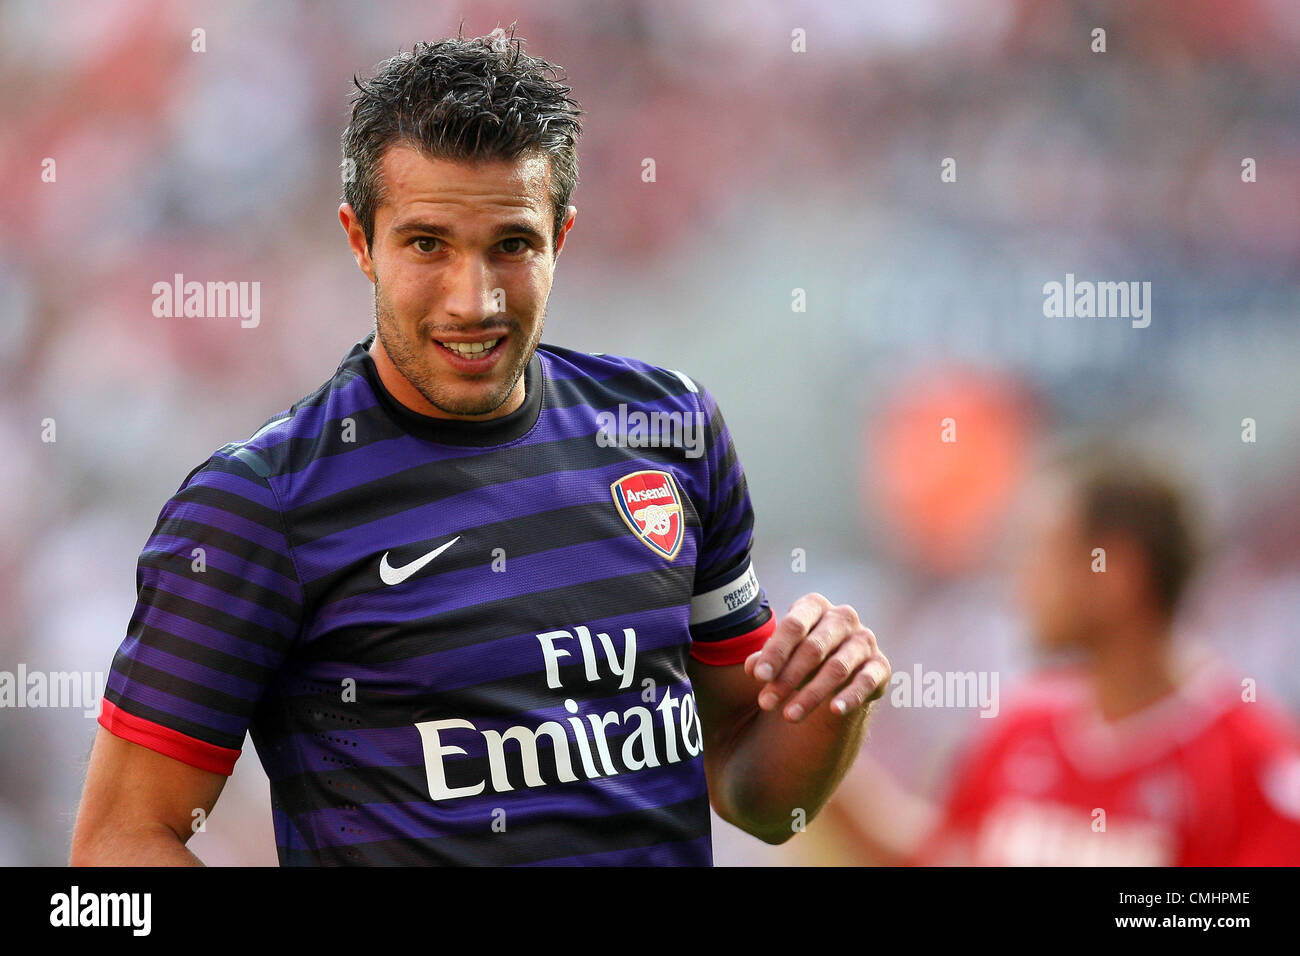 12.08.2012. Cologne, Germany.  Arsenal's Robin van Persie reacts during preseaon friendly match between FC Cologne Stock Photo